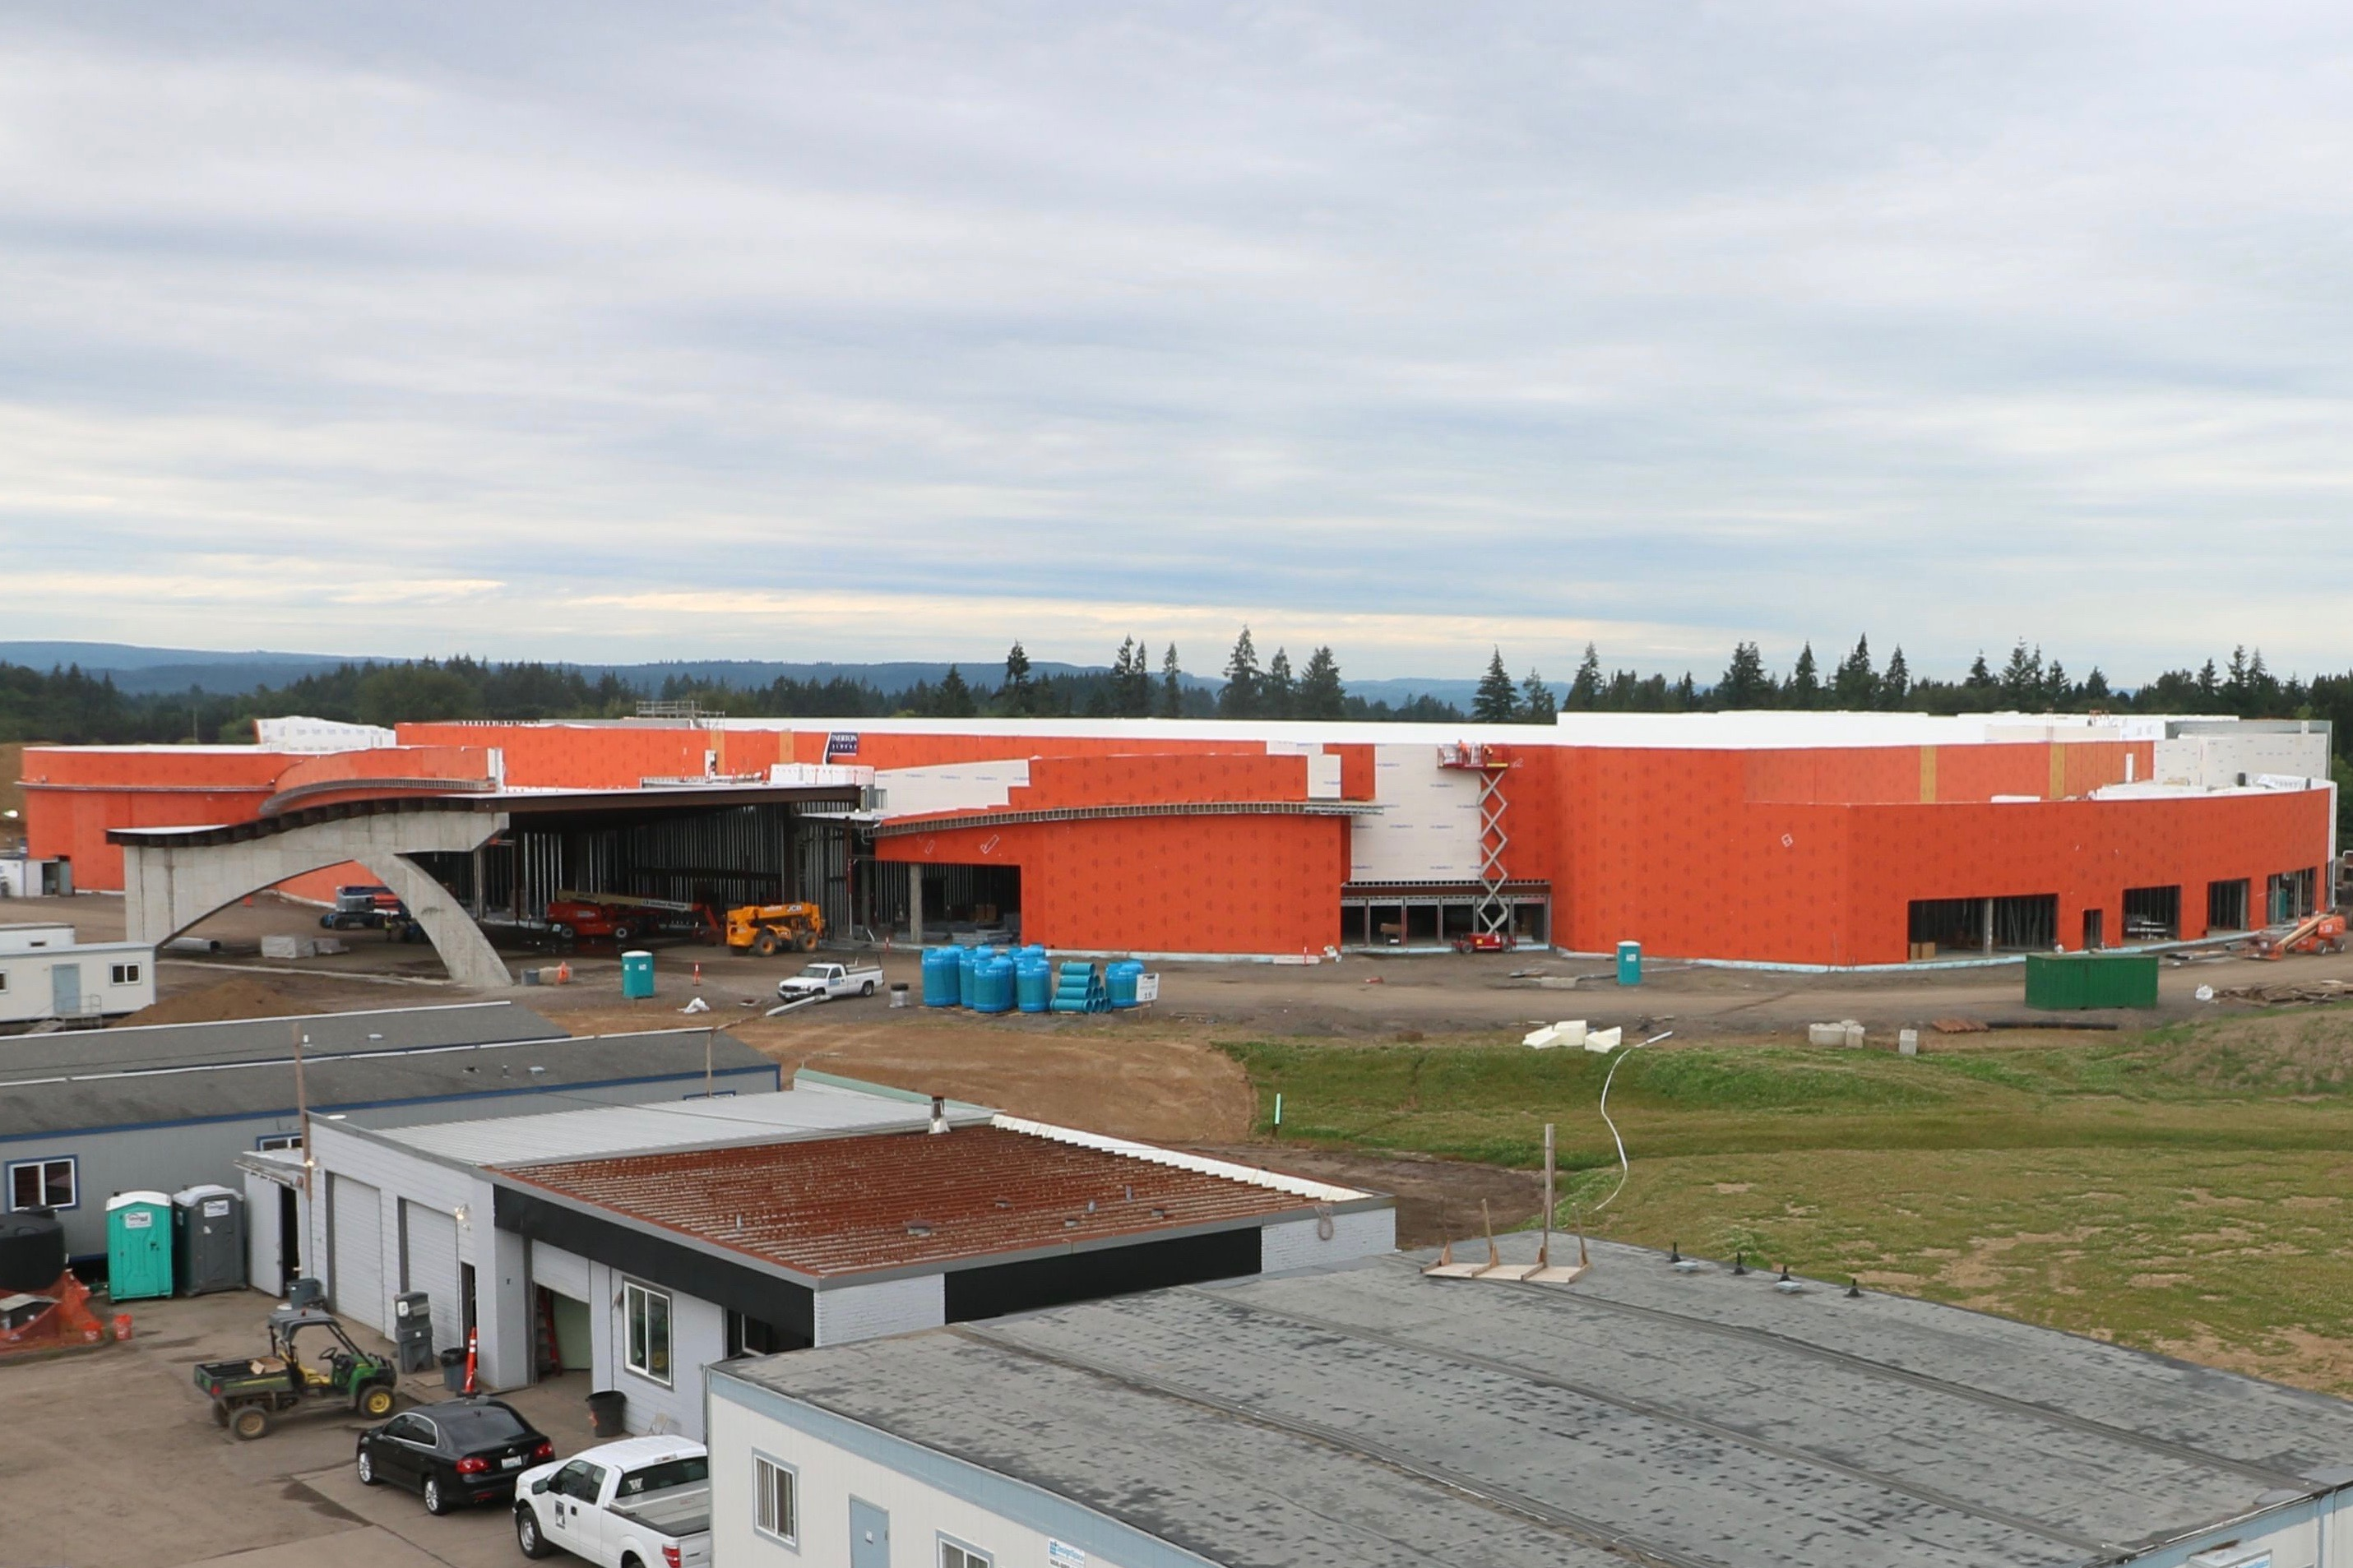 Cowlitz Tribe on track to open long-awaited casino in 10 months